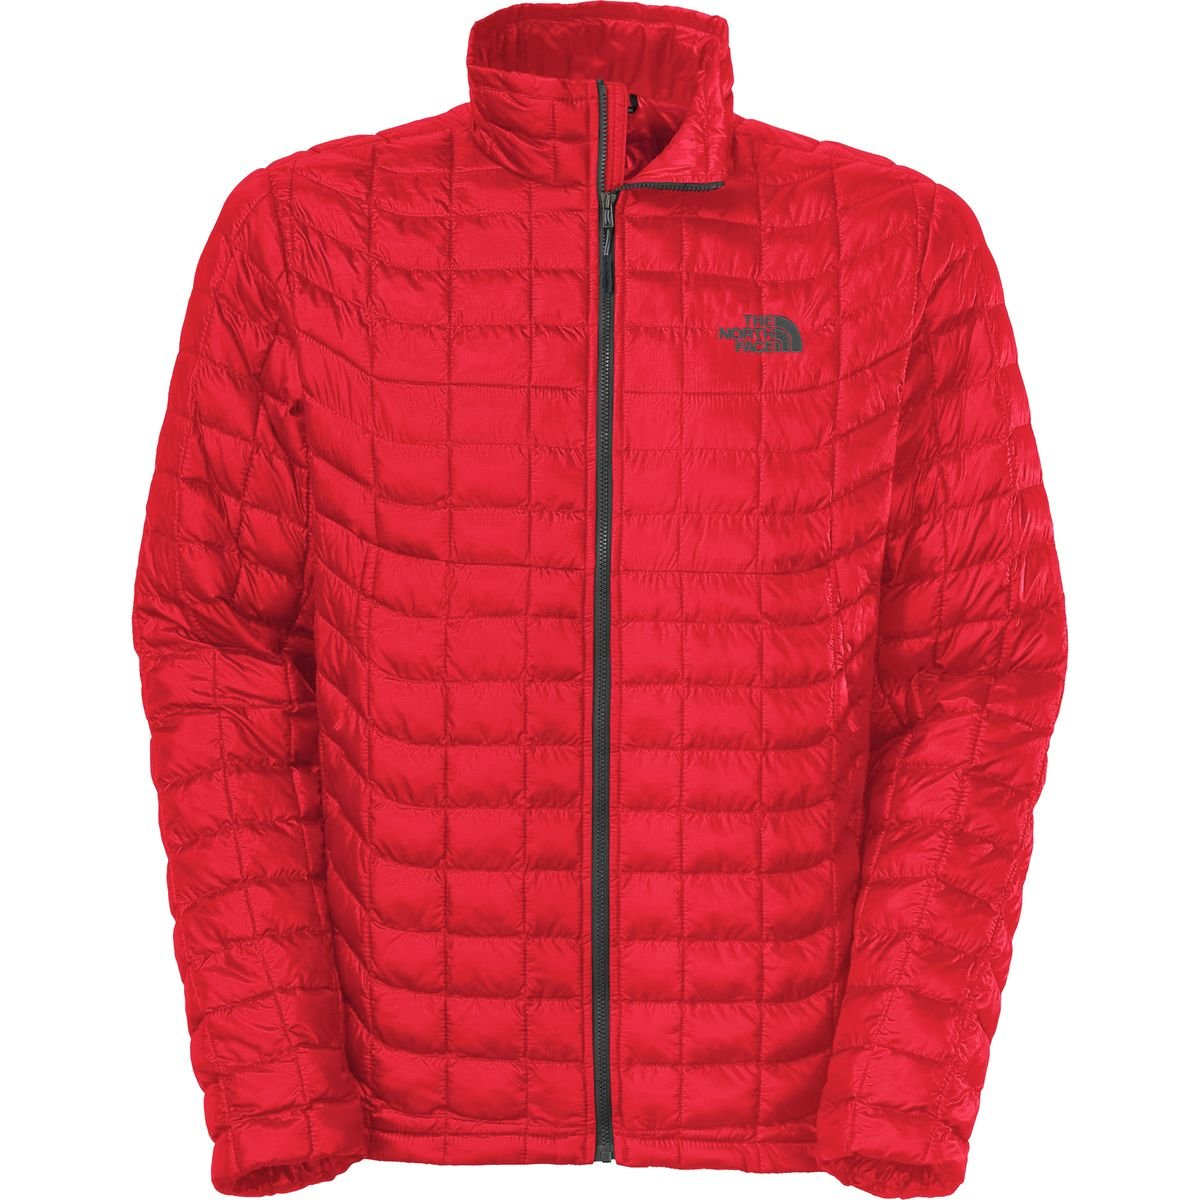 The North Face Men's Thermoball Full Zip Jacket The North Face Apparel Mens A39NG